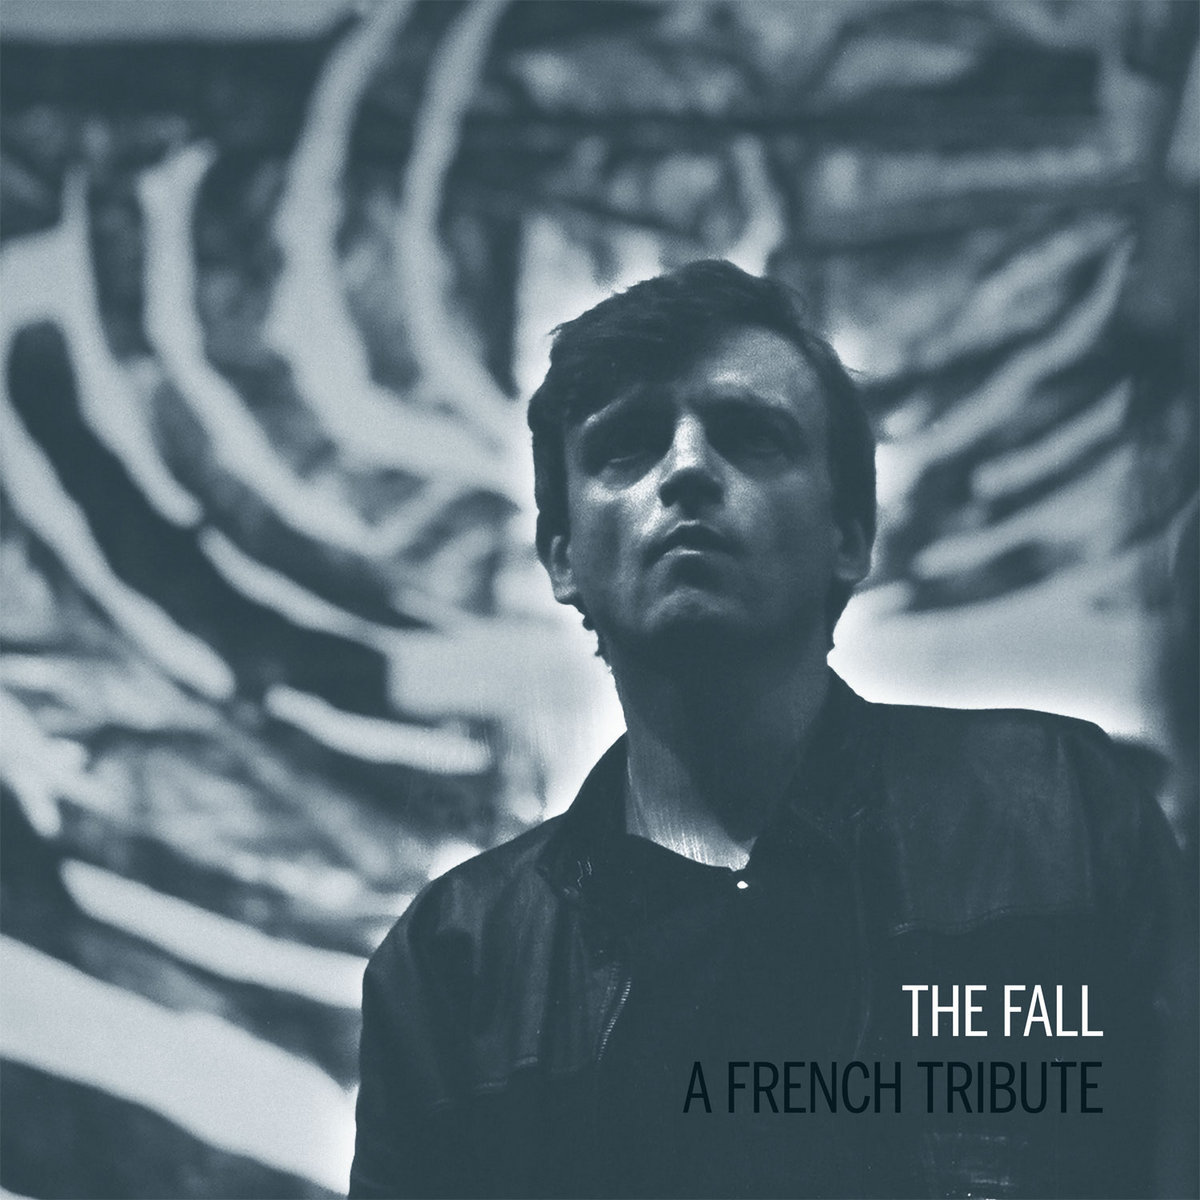 V/A - THE FALL, A French Tribute